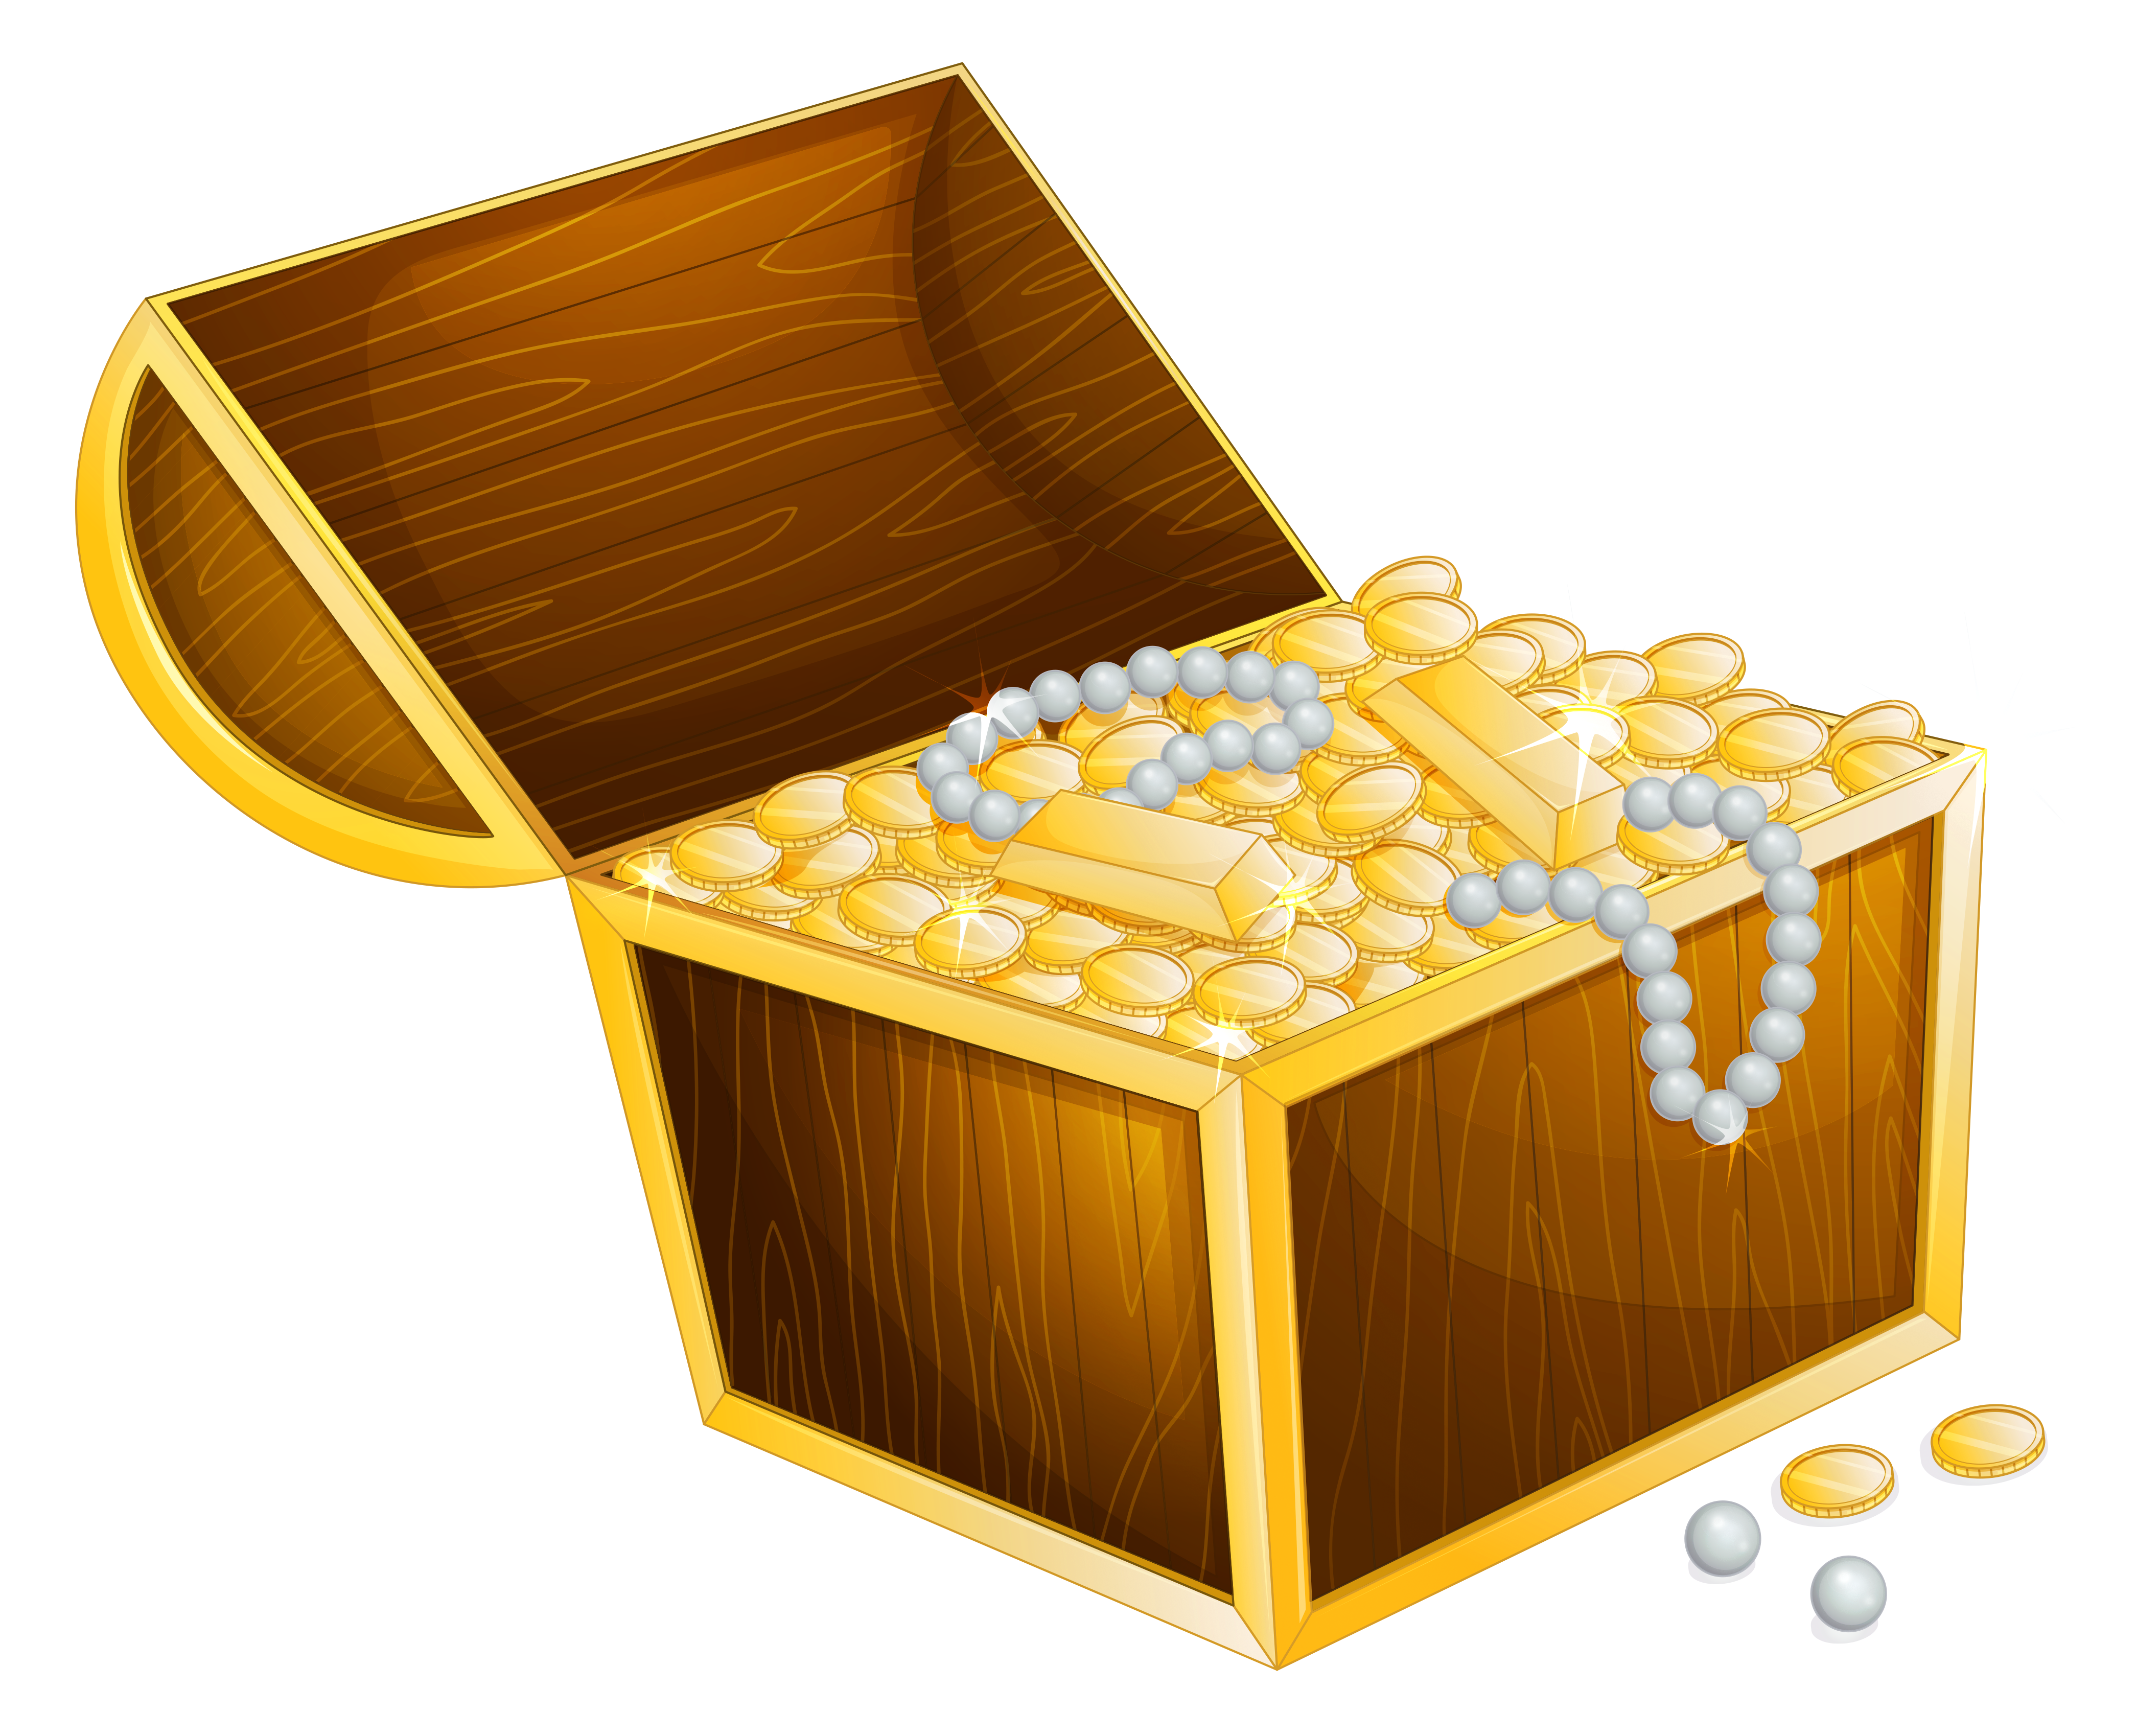 Chest Png - Transparent Treasure Chest PNG Picture | Gallery Yopriceville ...